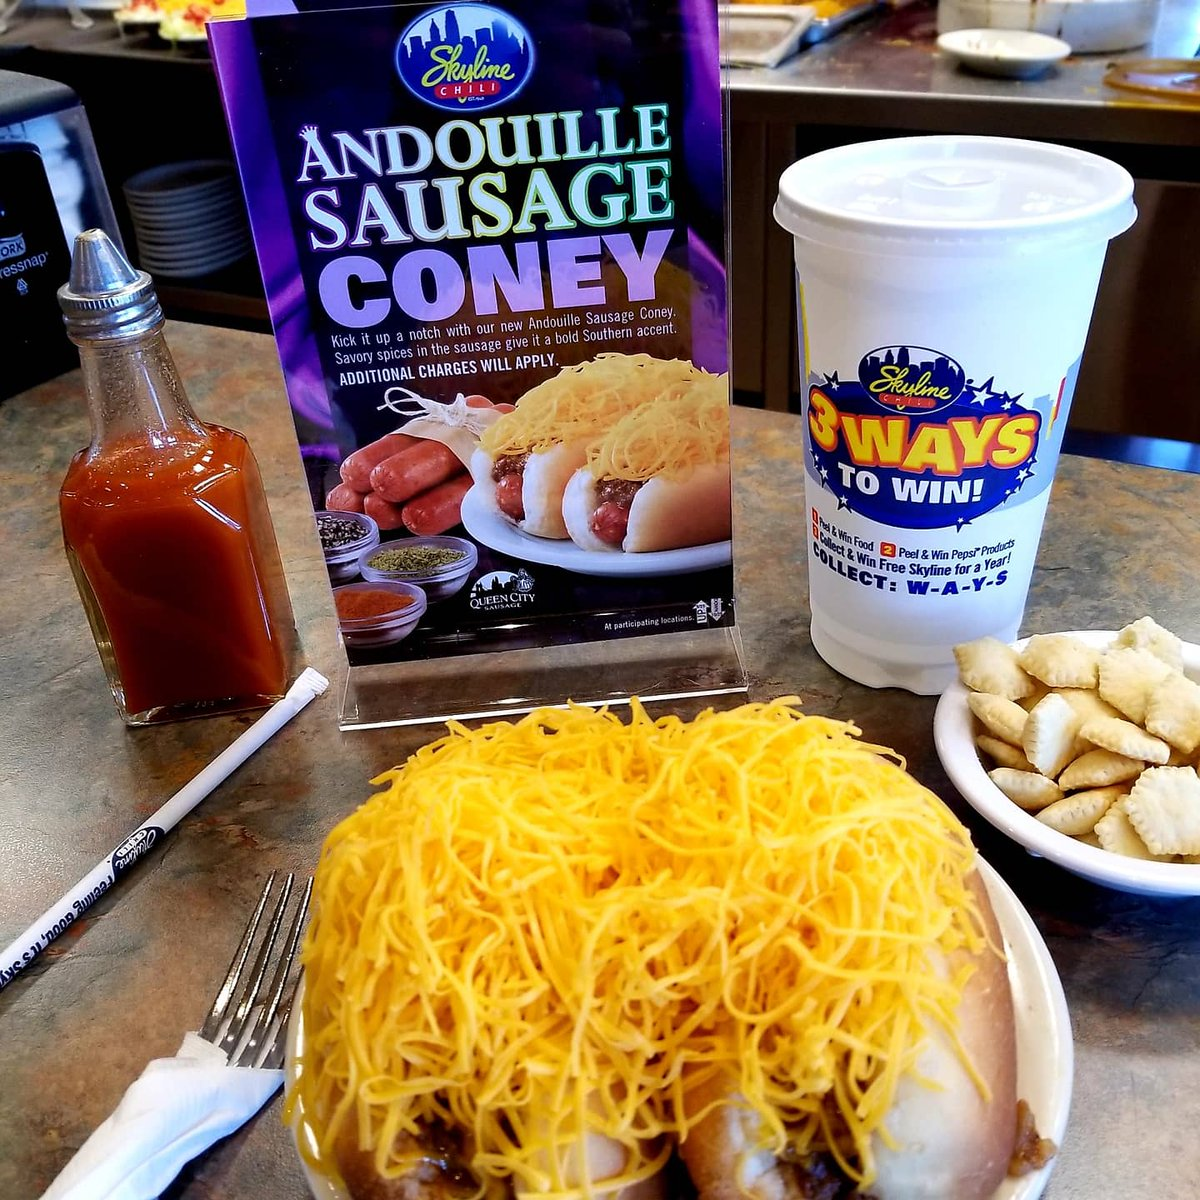 @Skyline_Chili Saturday! Make sure you try some delicious Andouille Coneys this weekend...limited time only!😋🌭 #SaturdayVibes #SkylineChili #AndouilleConeys